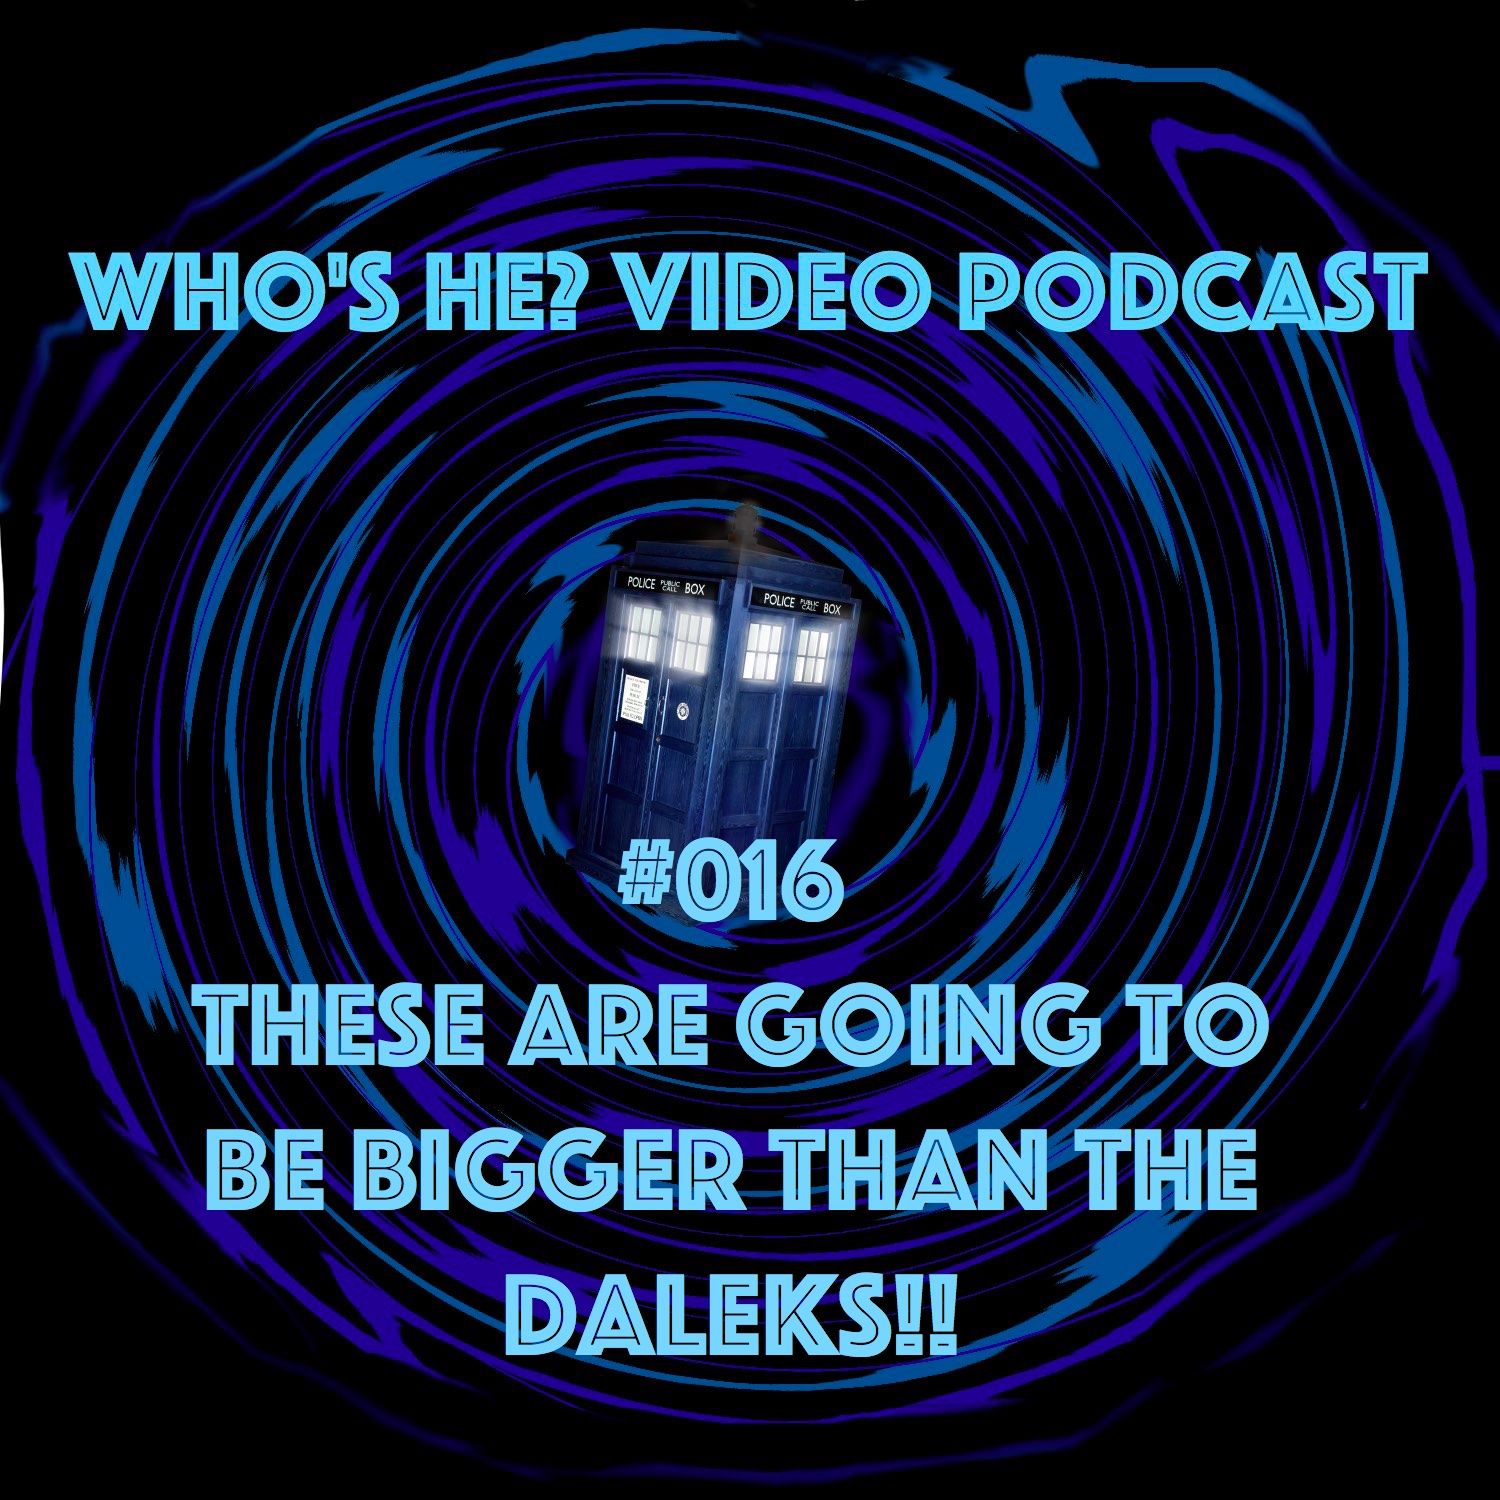 Artwork for Who's He? Video Podcast #016 These are going to be bigger than the Daleks!